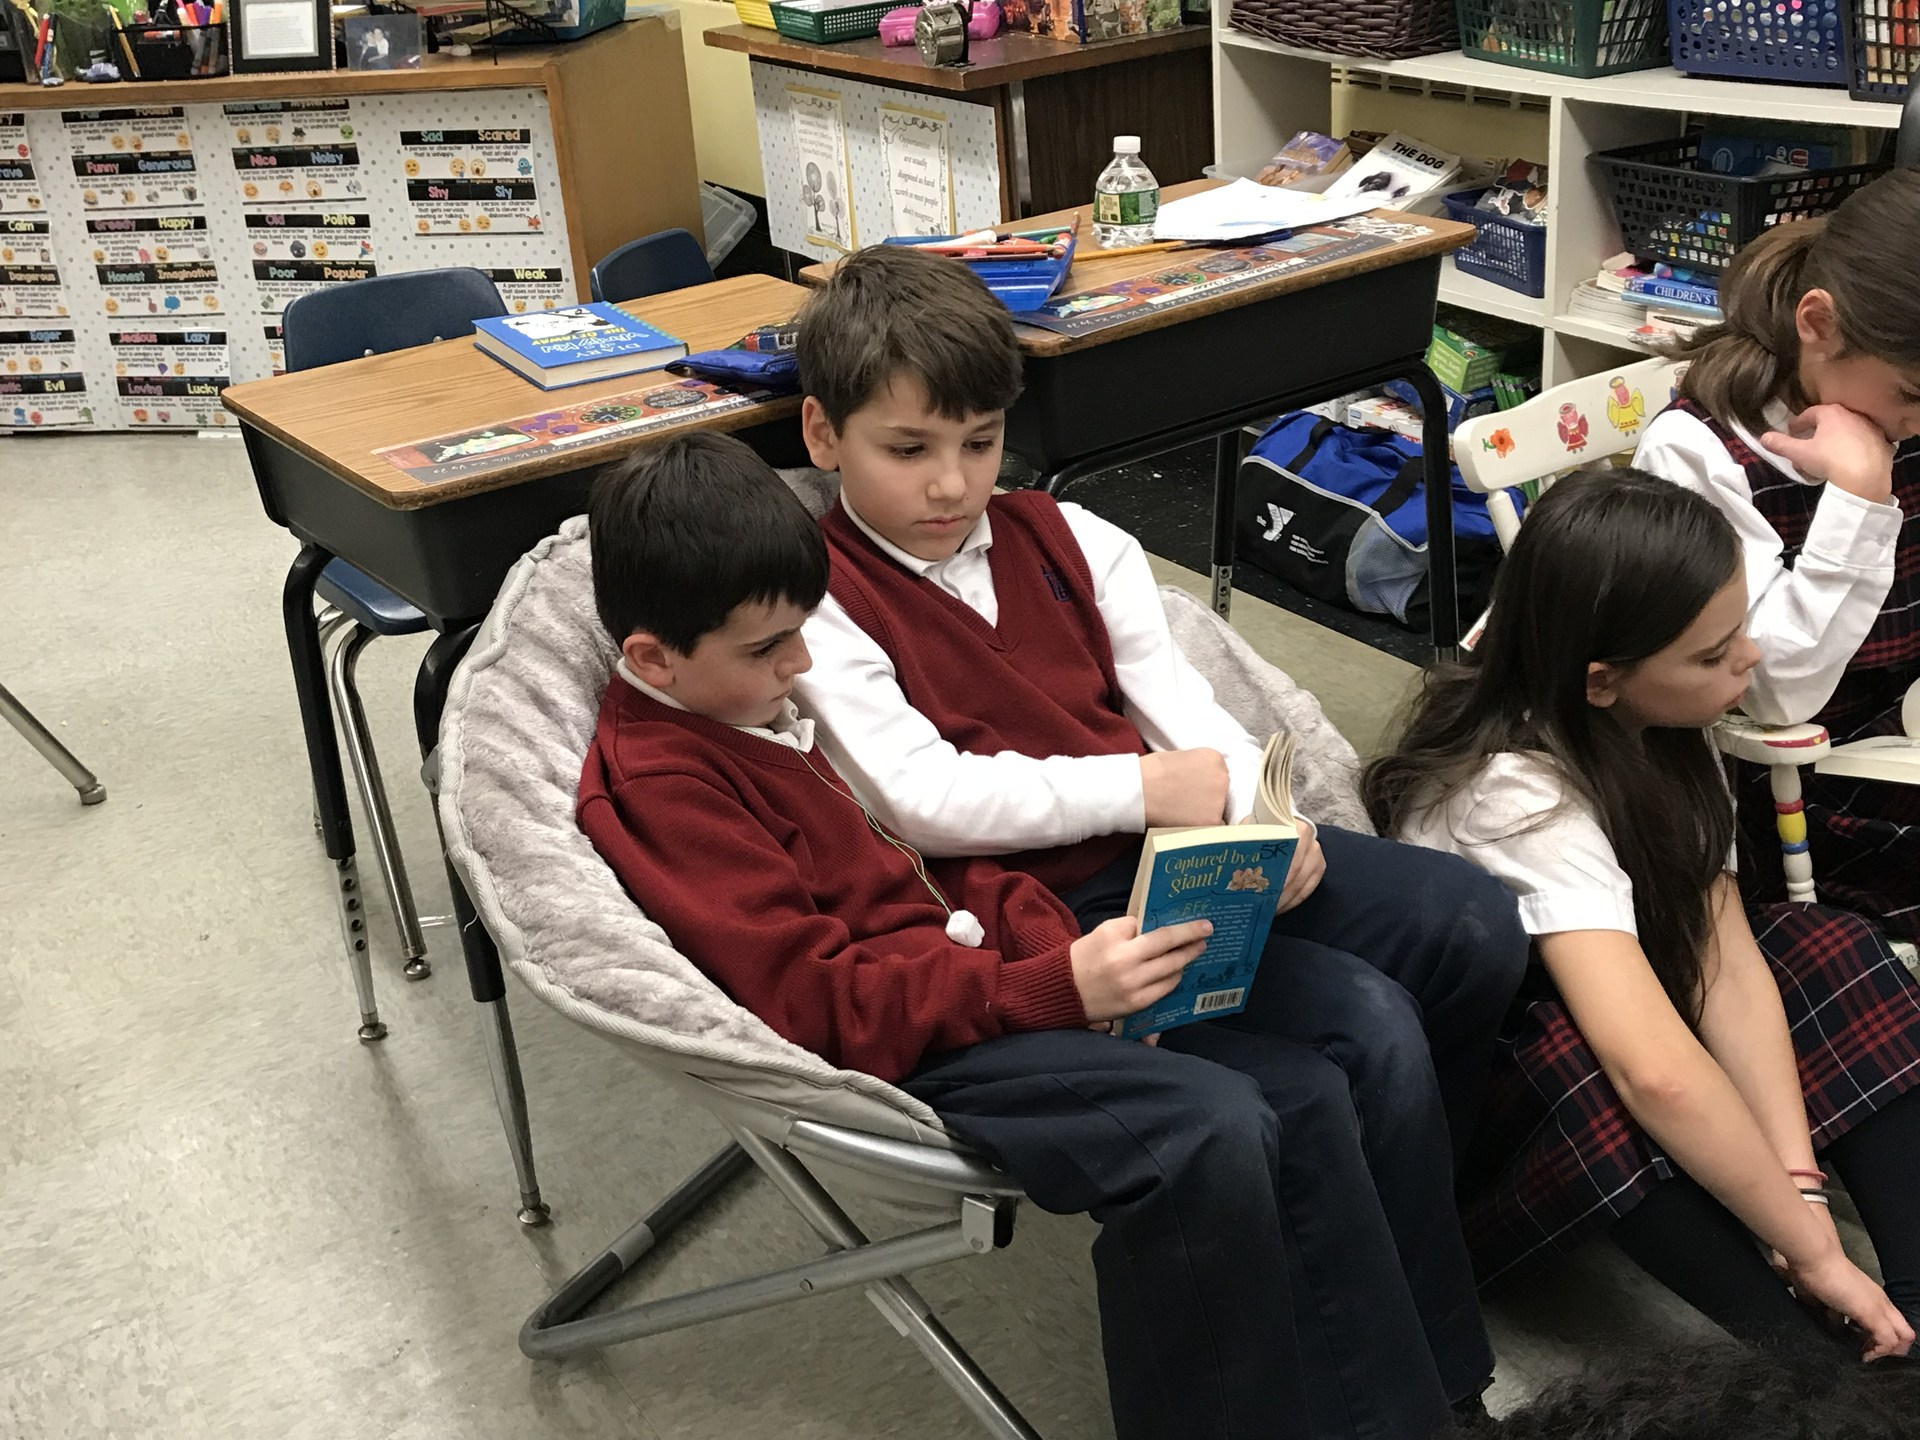 Two students sit next to each other and read